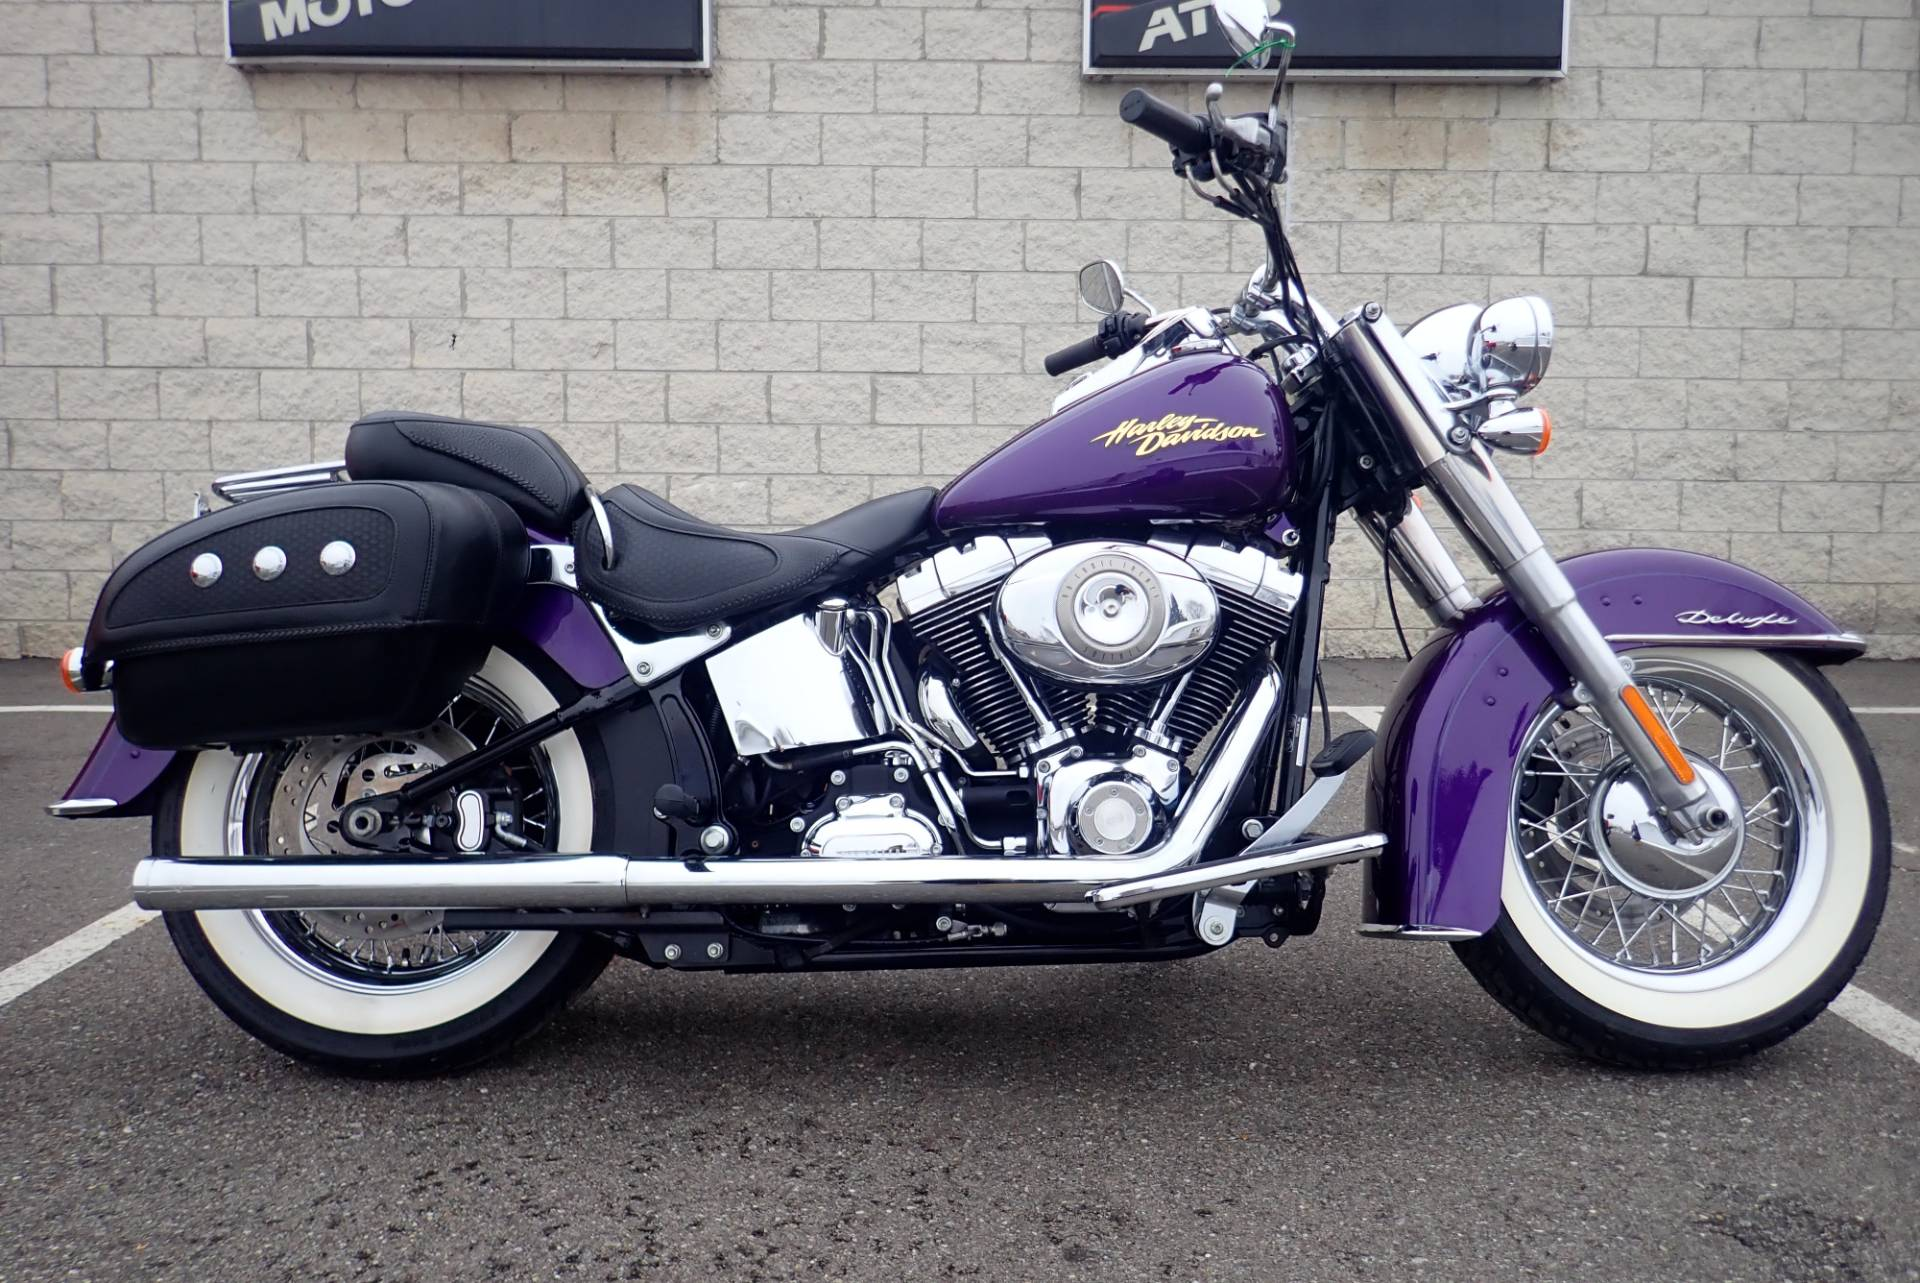 2008 Harley Davidson Heritage Softail Classic Motorcycles Massillon In Ohio